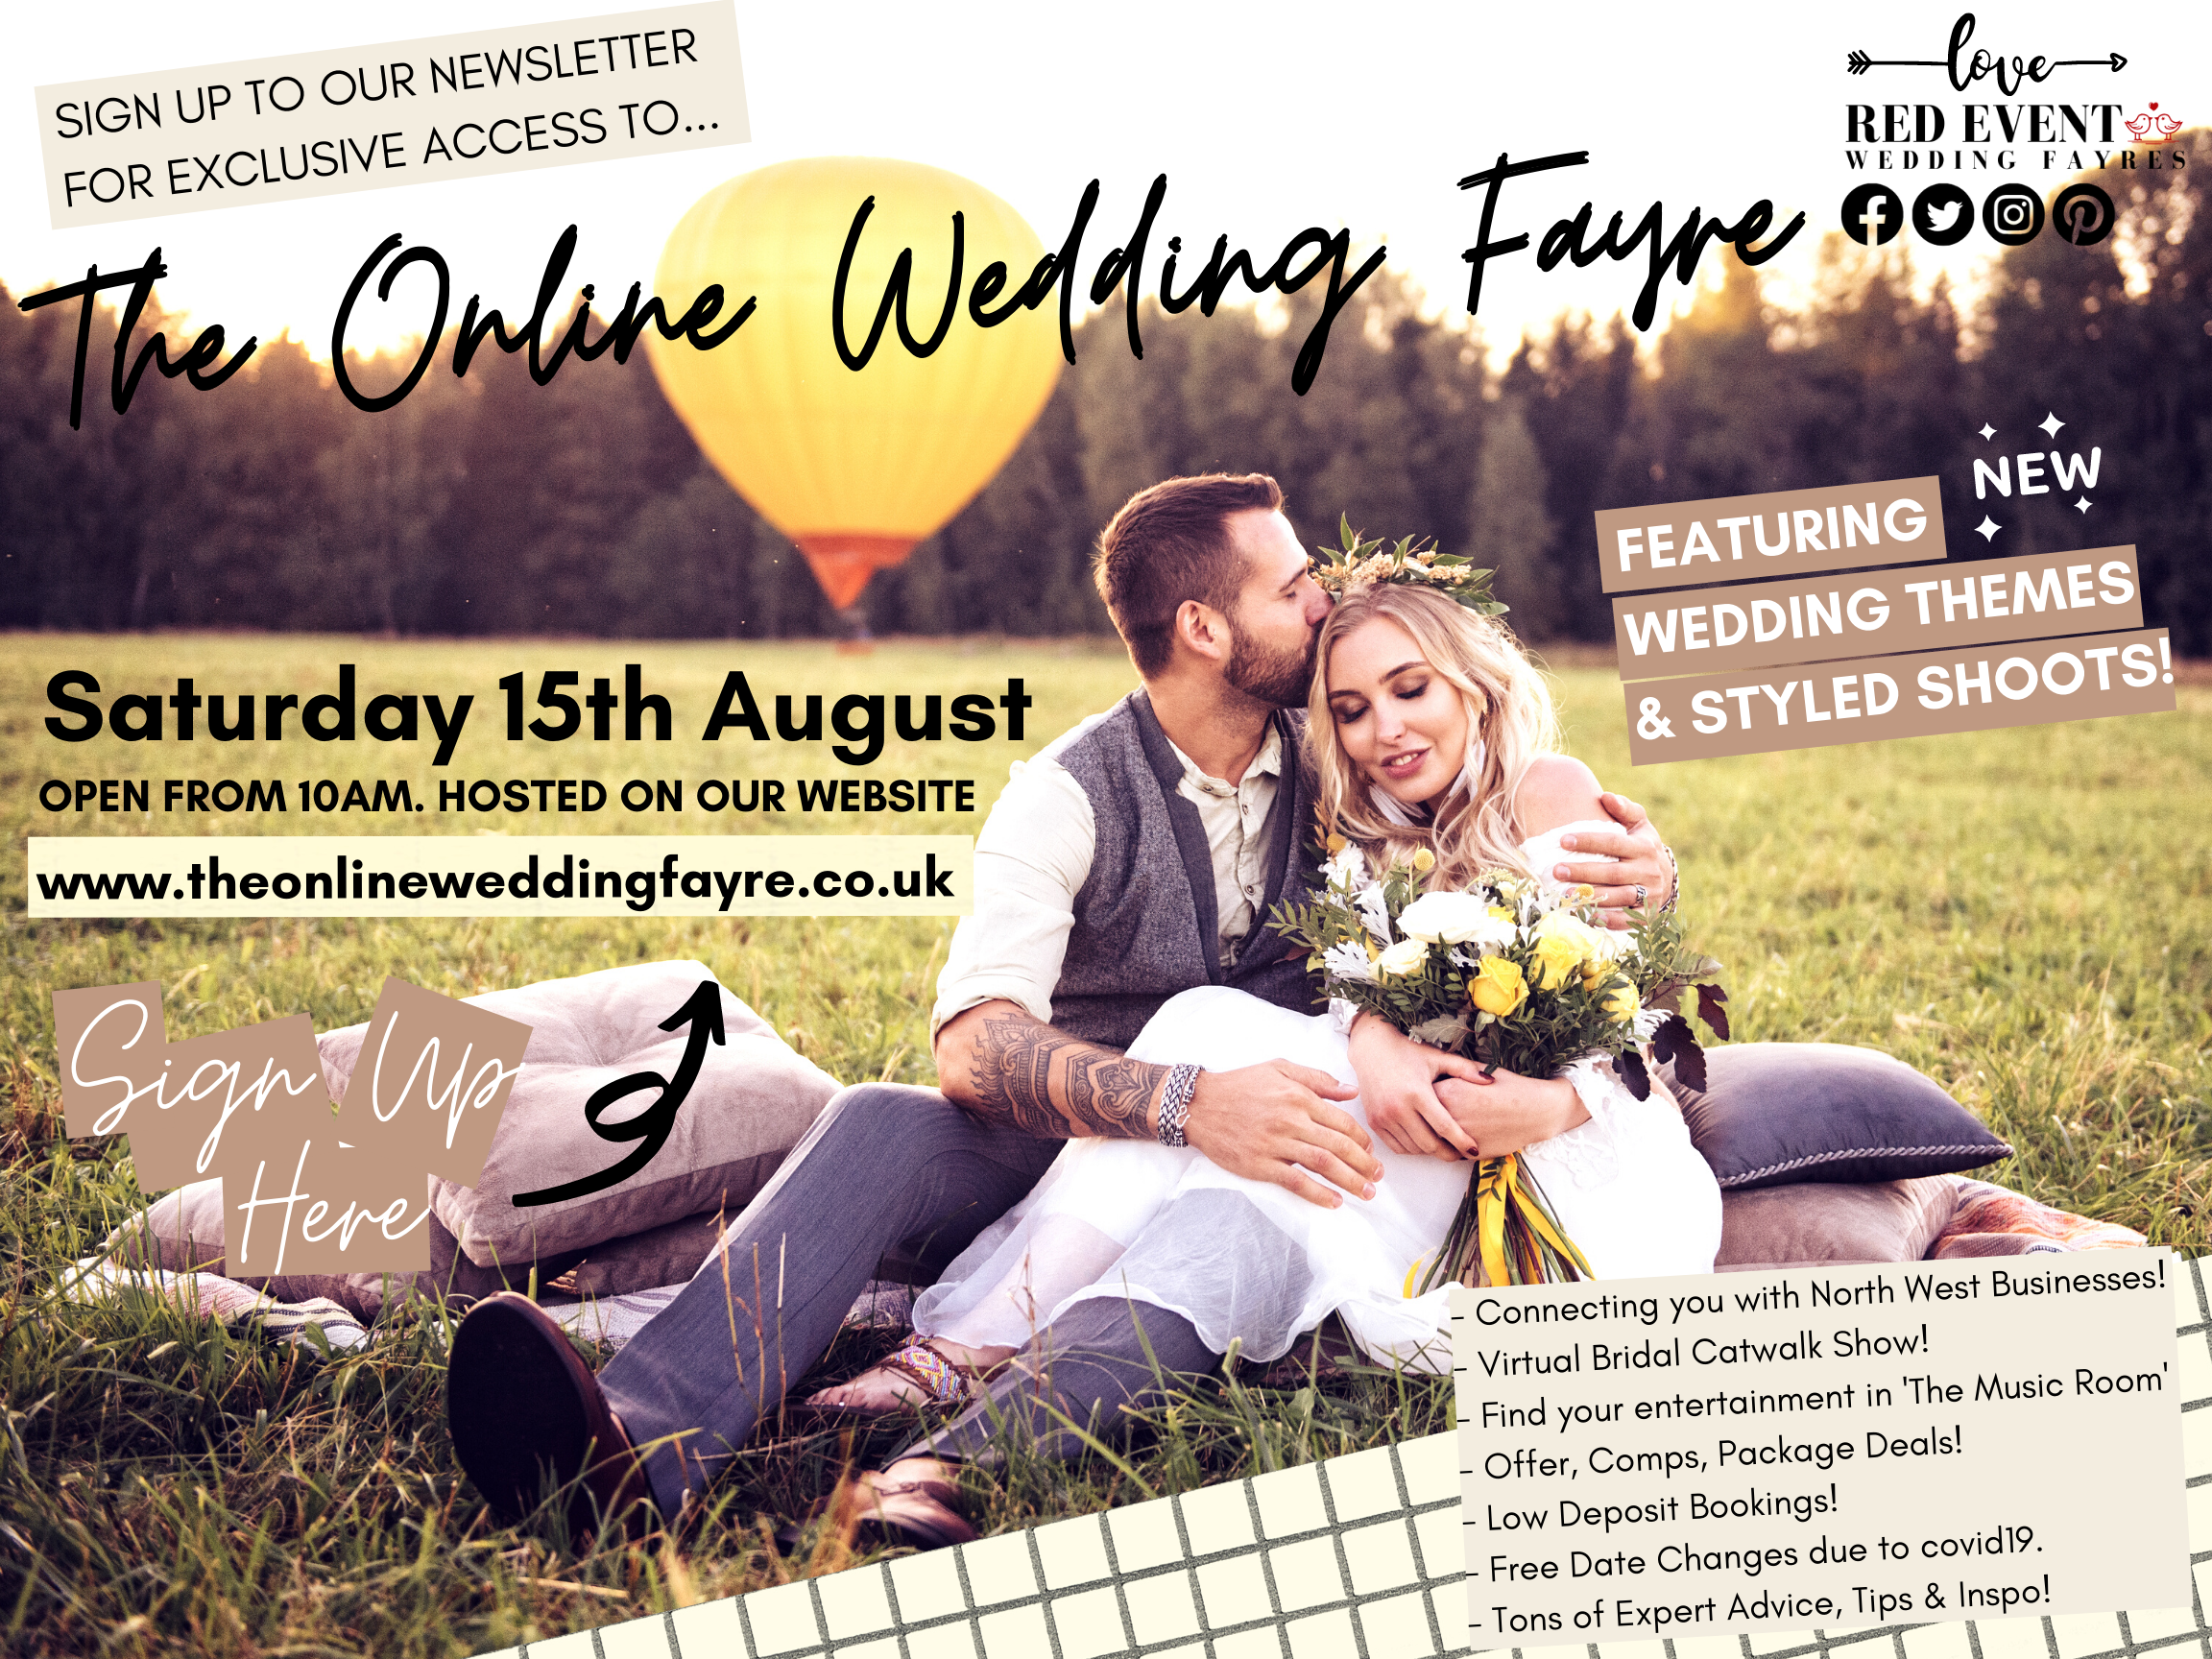 The North West's Online Virtual Wedding Fayre - Featuring Wedding Themes & Styled Shoots!